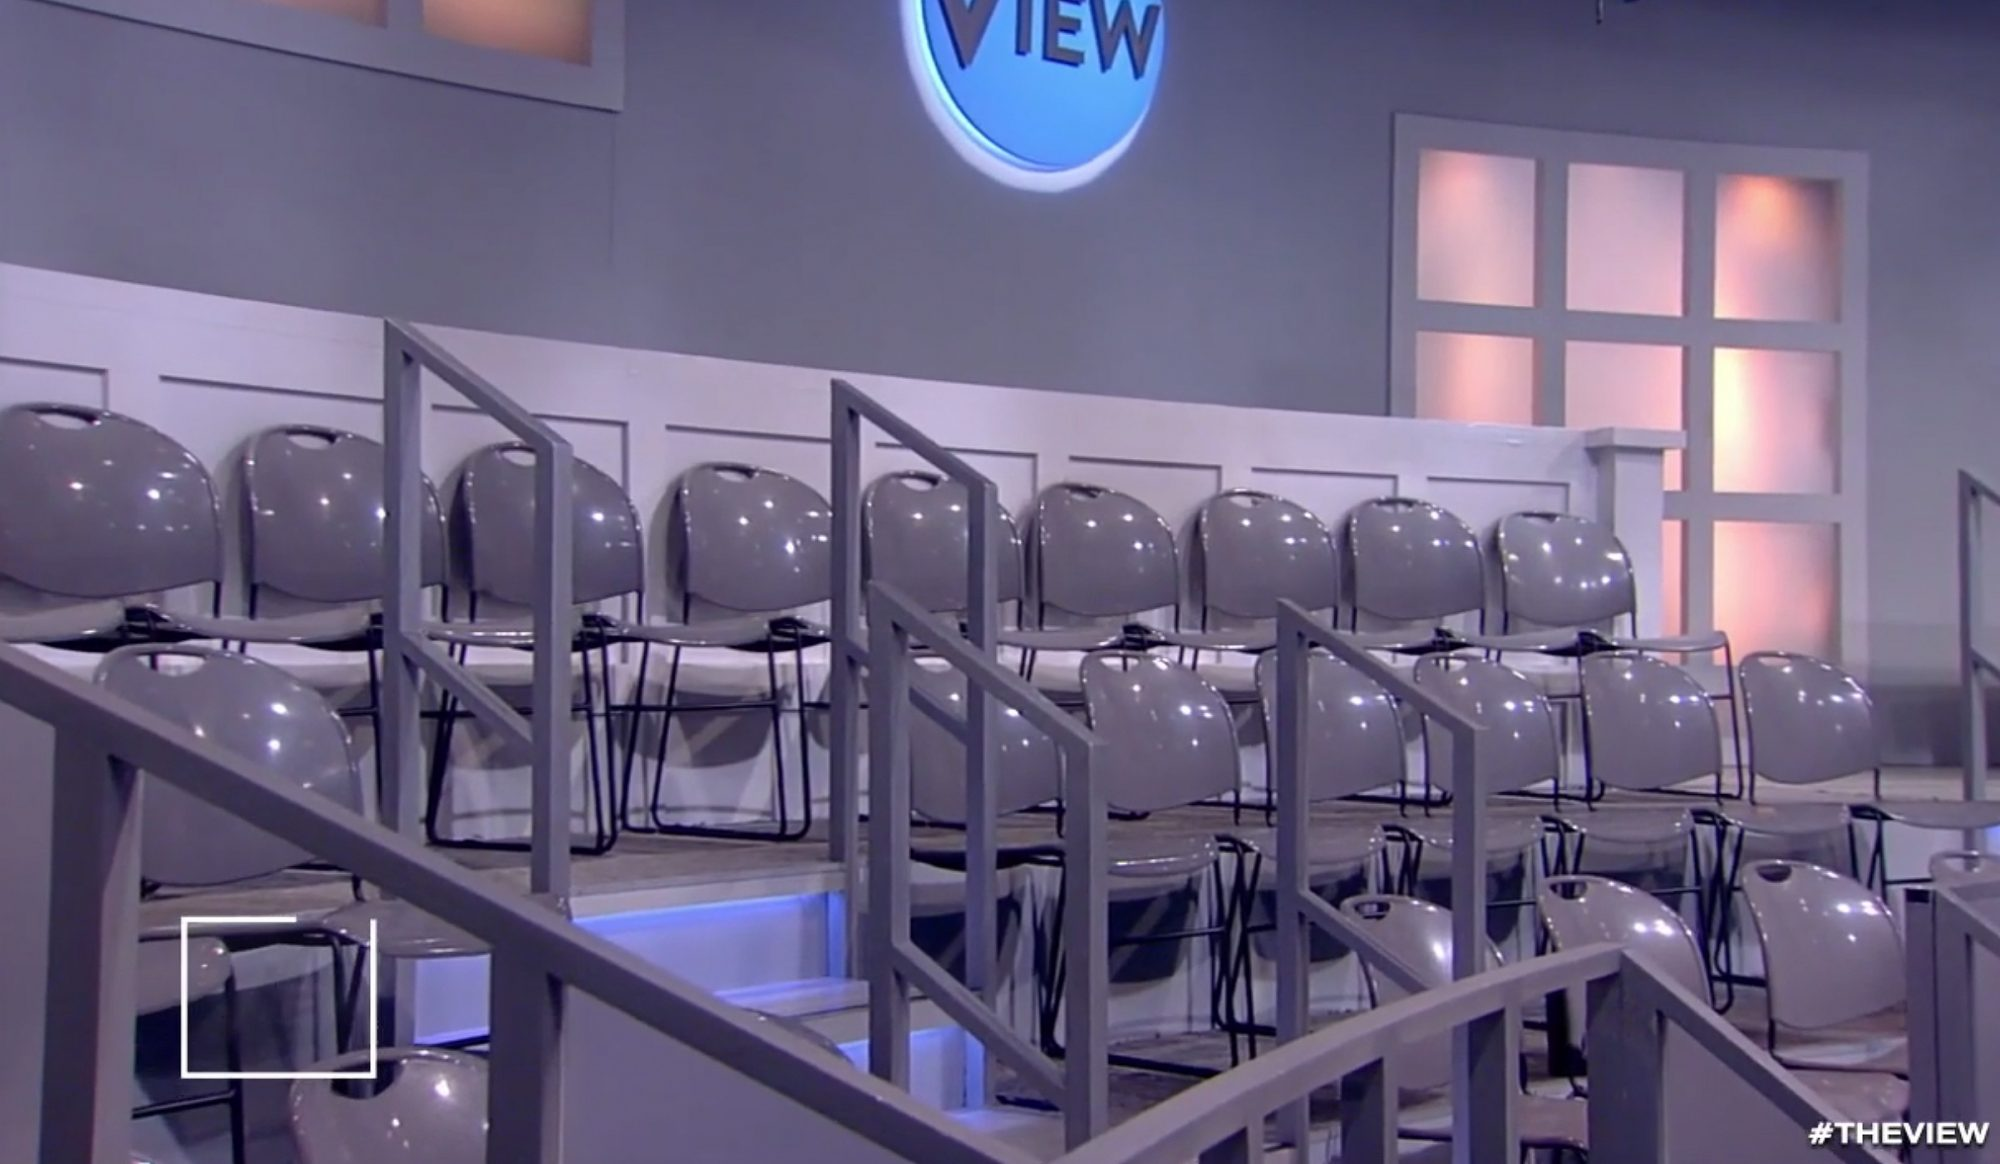 The View's empty audience